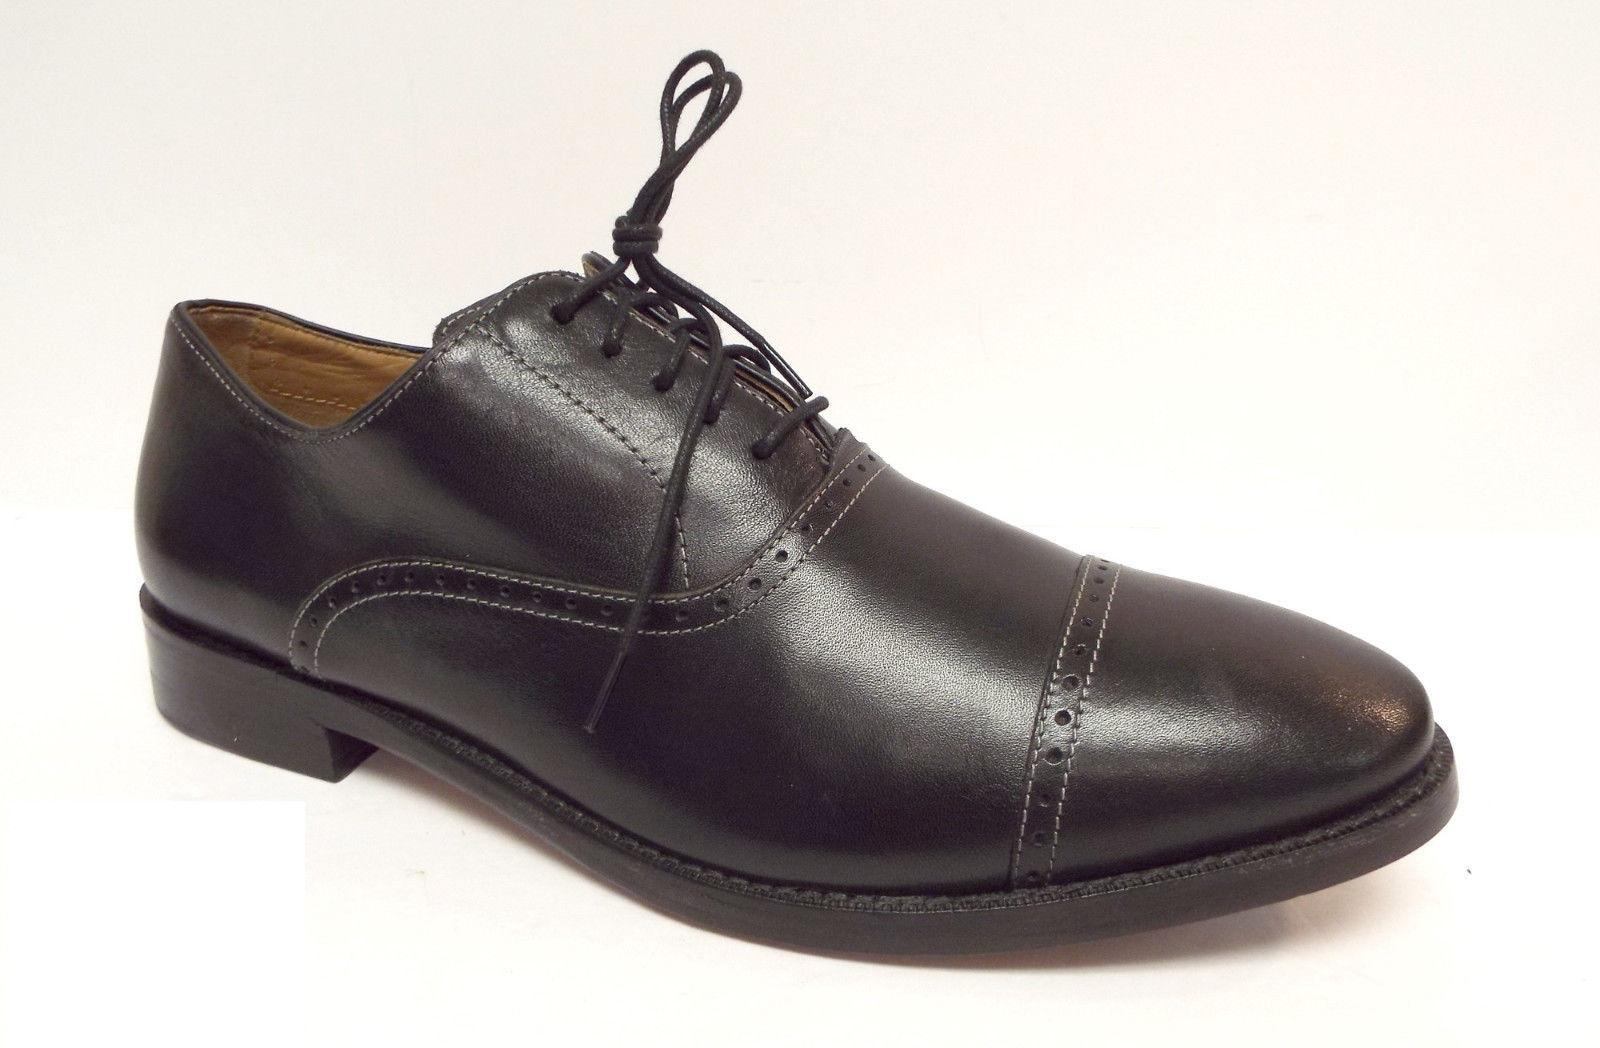 Cole Haan Black Leather Cap Toe Oxfords Men's Shoes ...